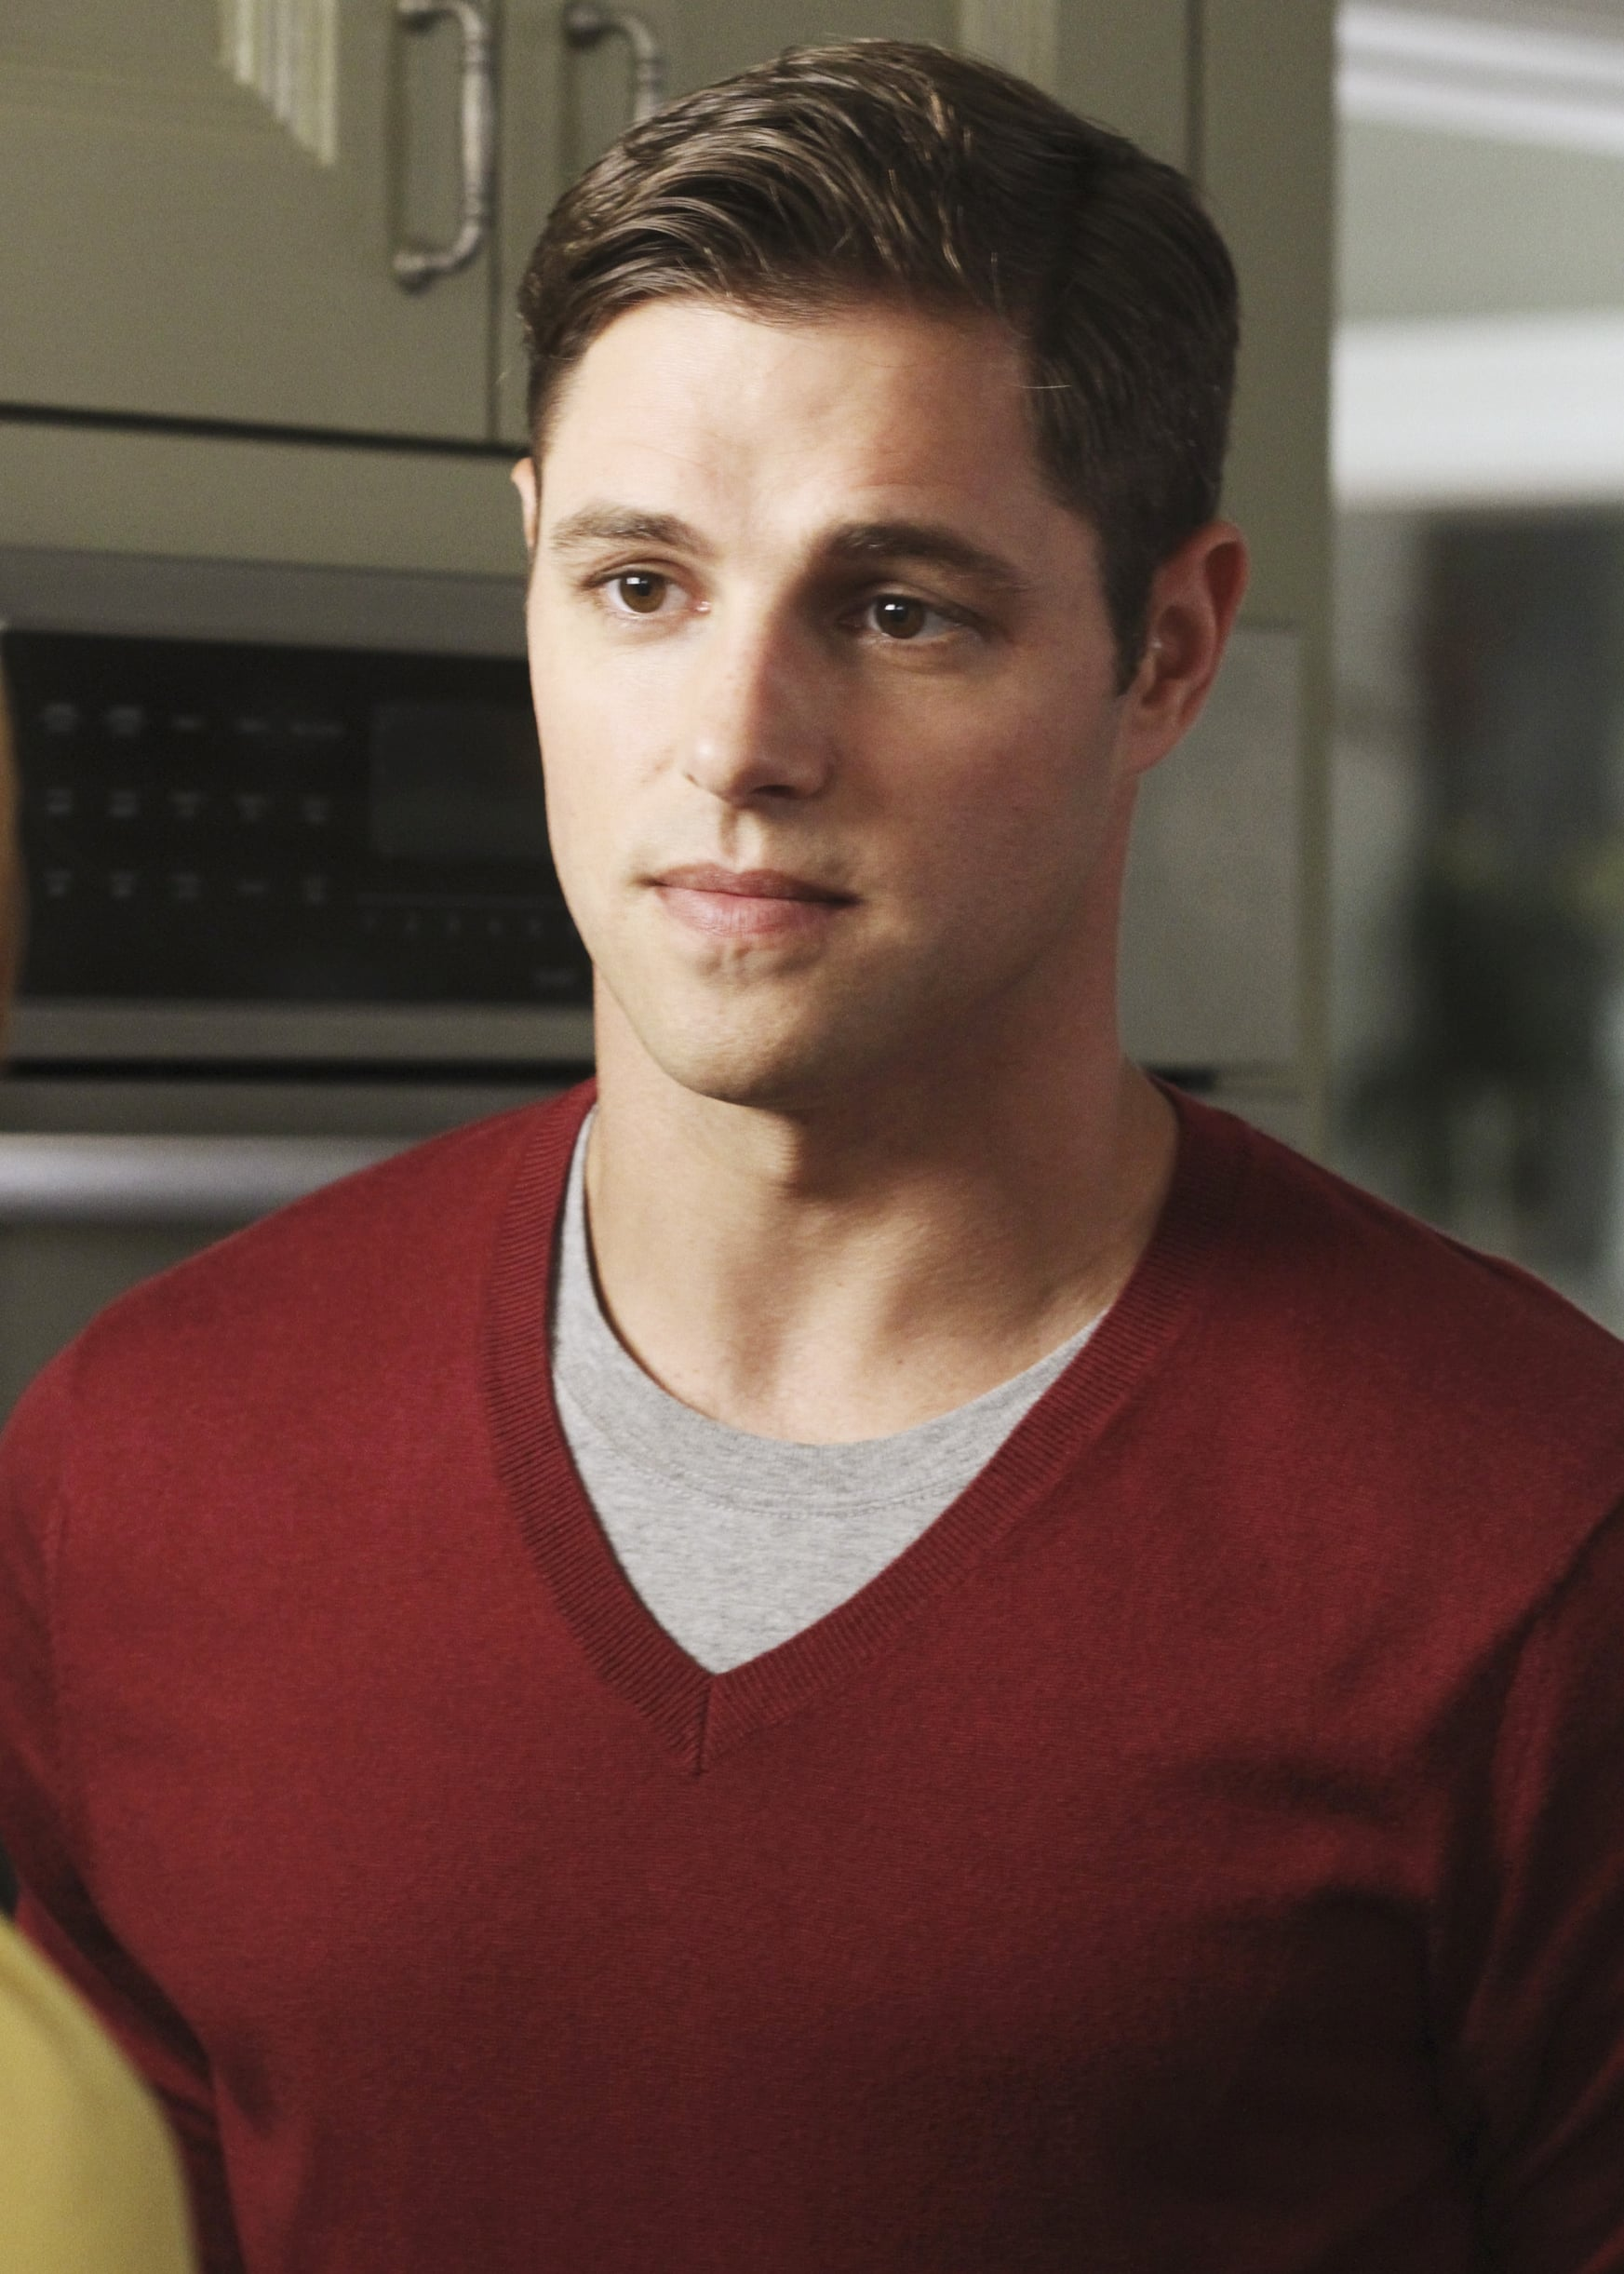 And making women swoon on Desperate Housewives in 2010.